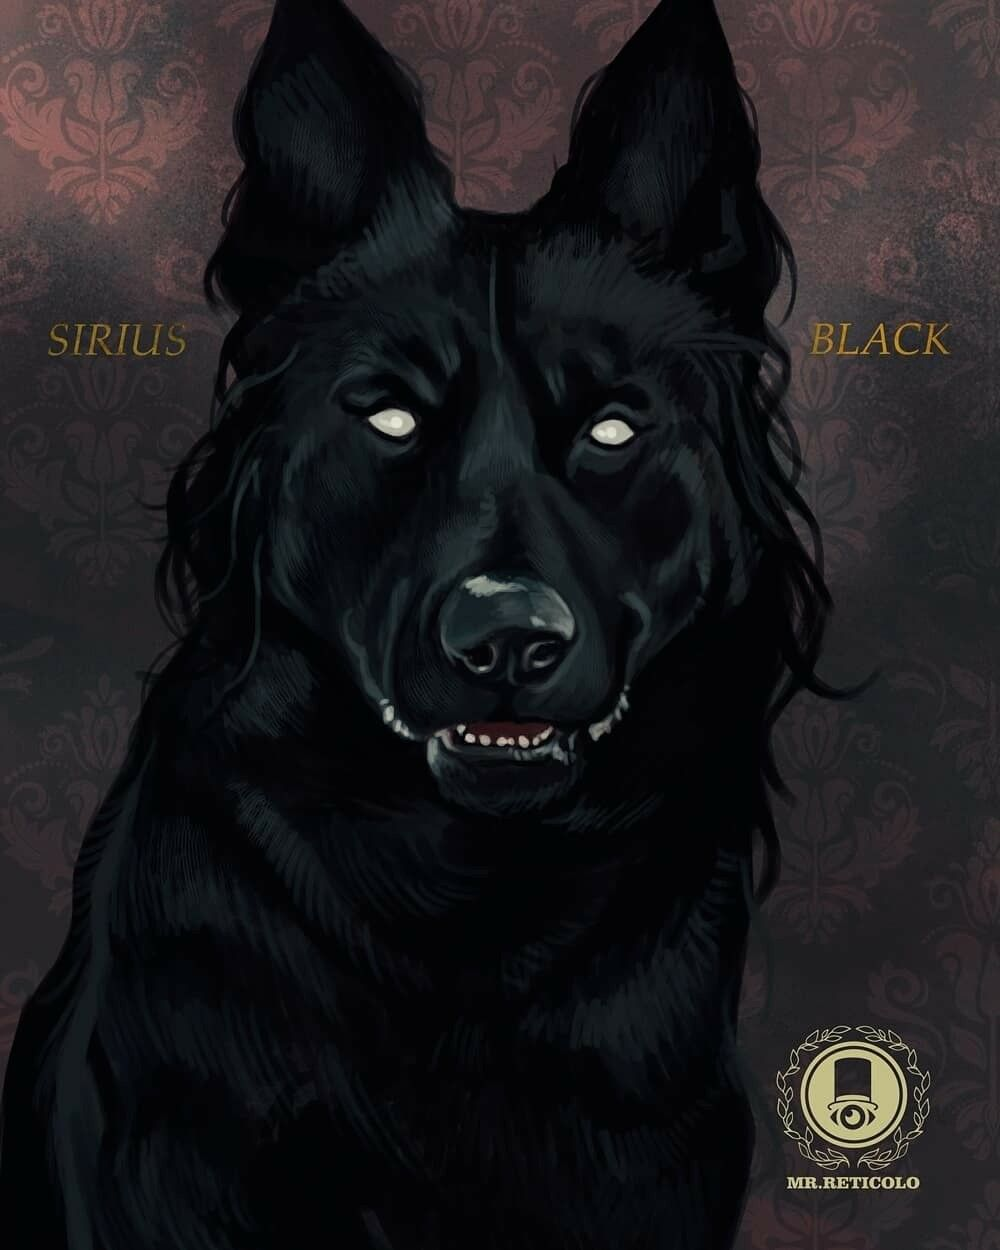 Pin By Natalie On Harry Potter Young Sirius Black Harry Potter Sirius Harry Potter Artwork